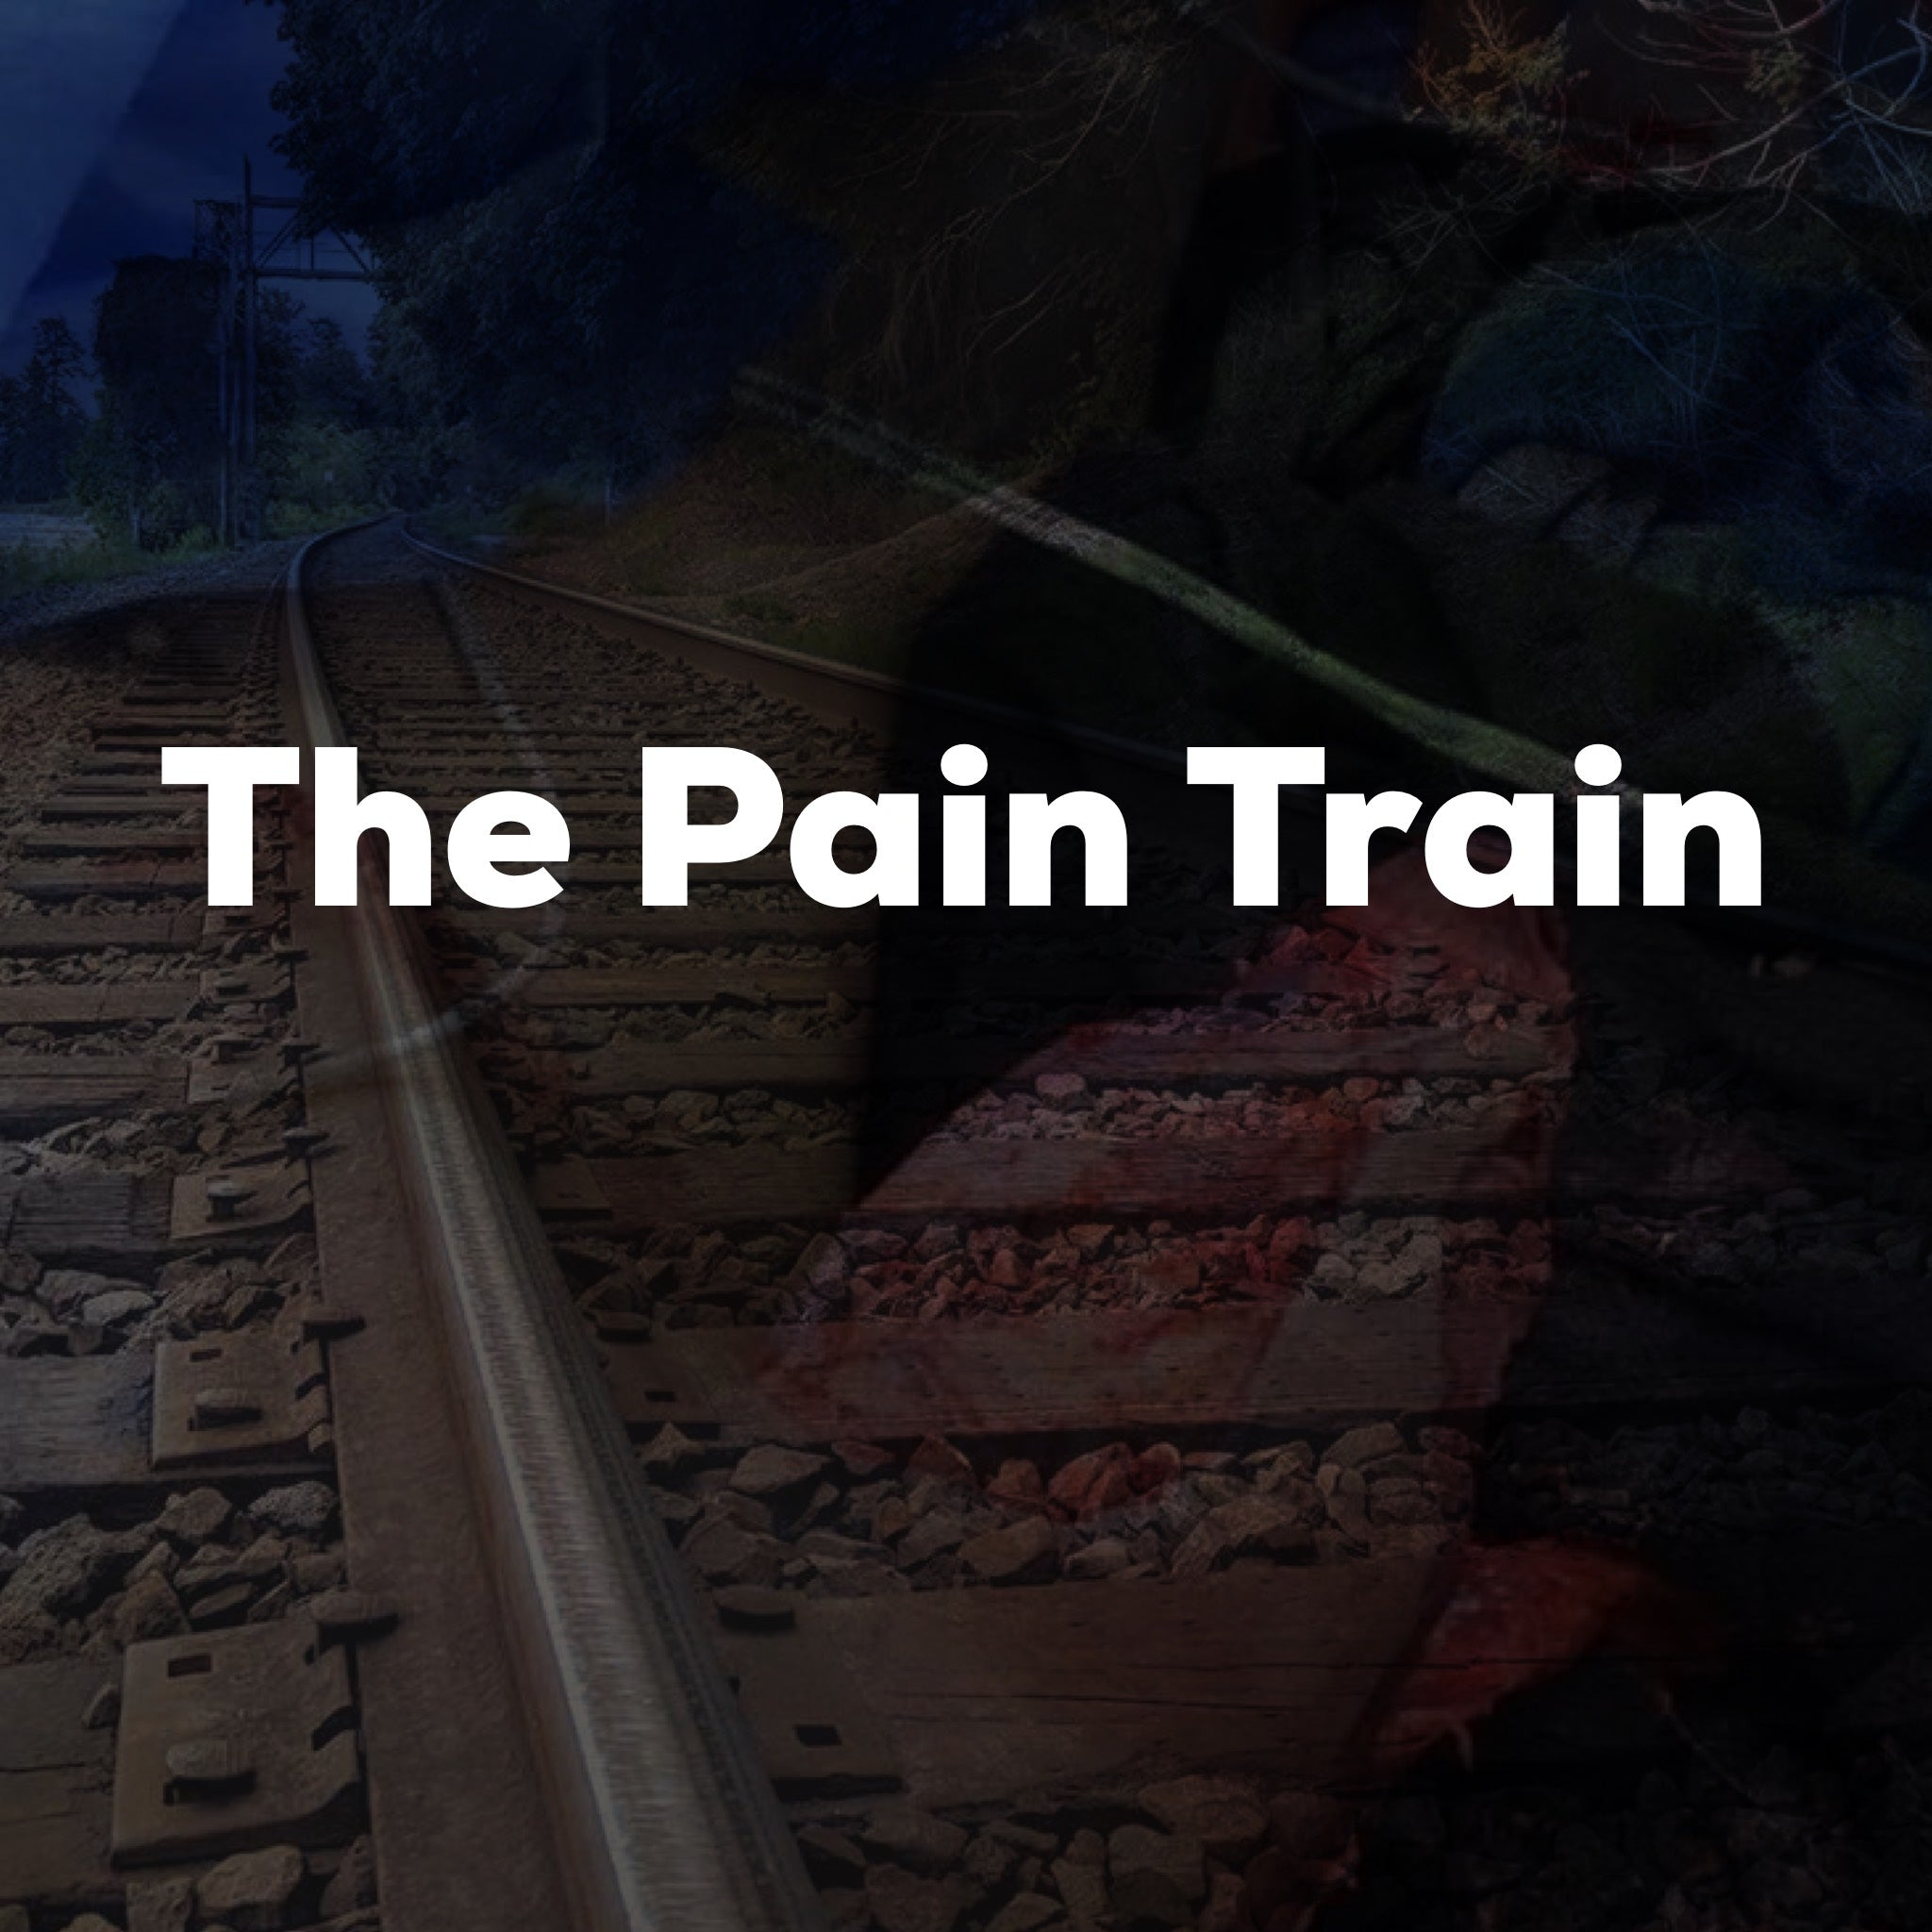 The Pain Train